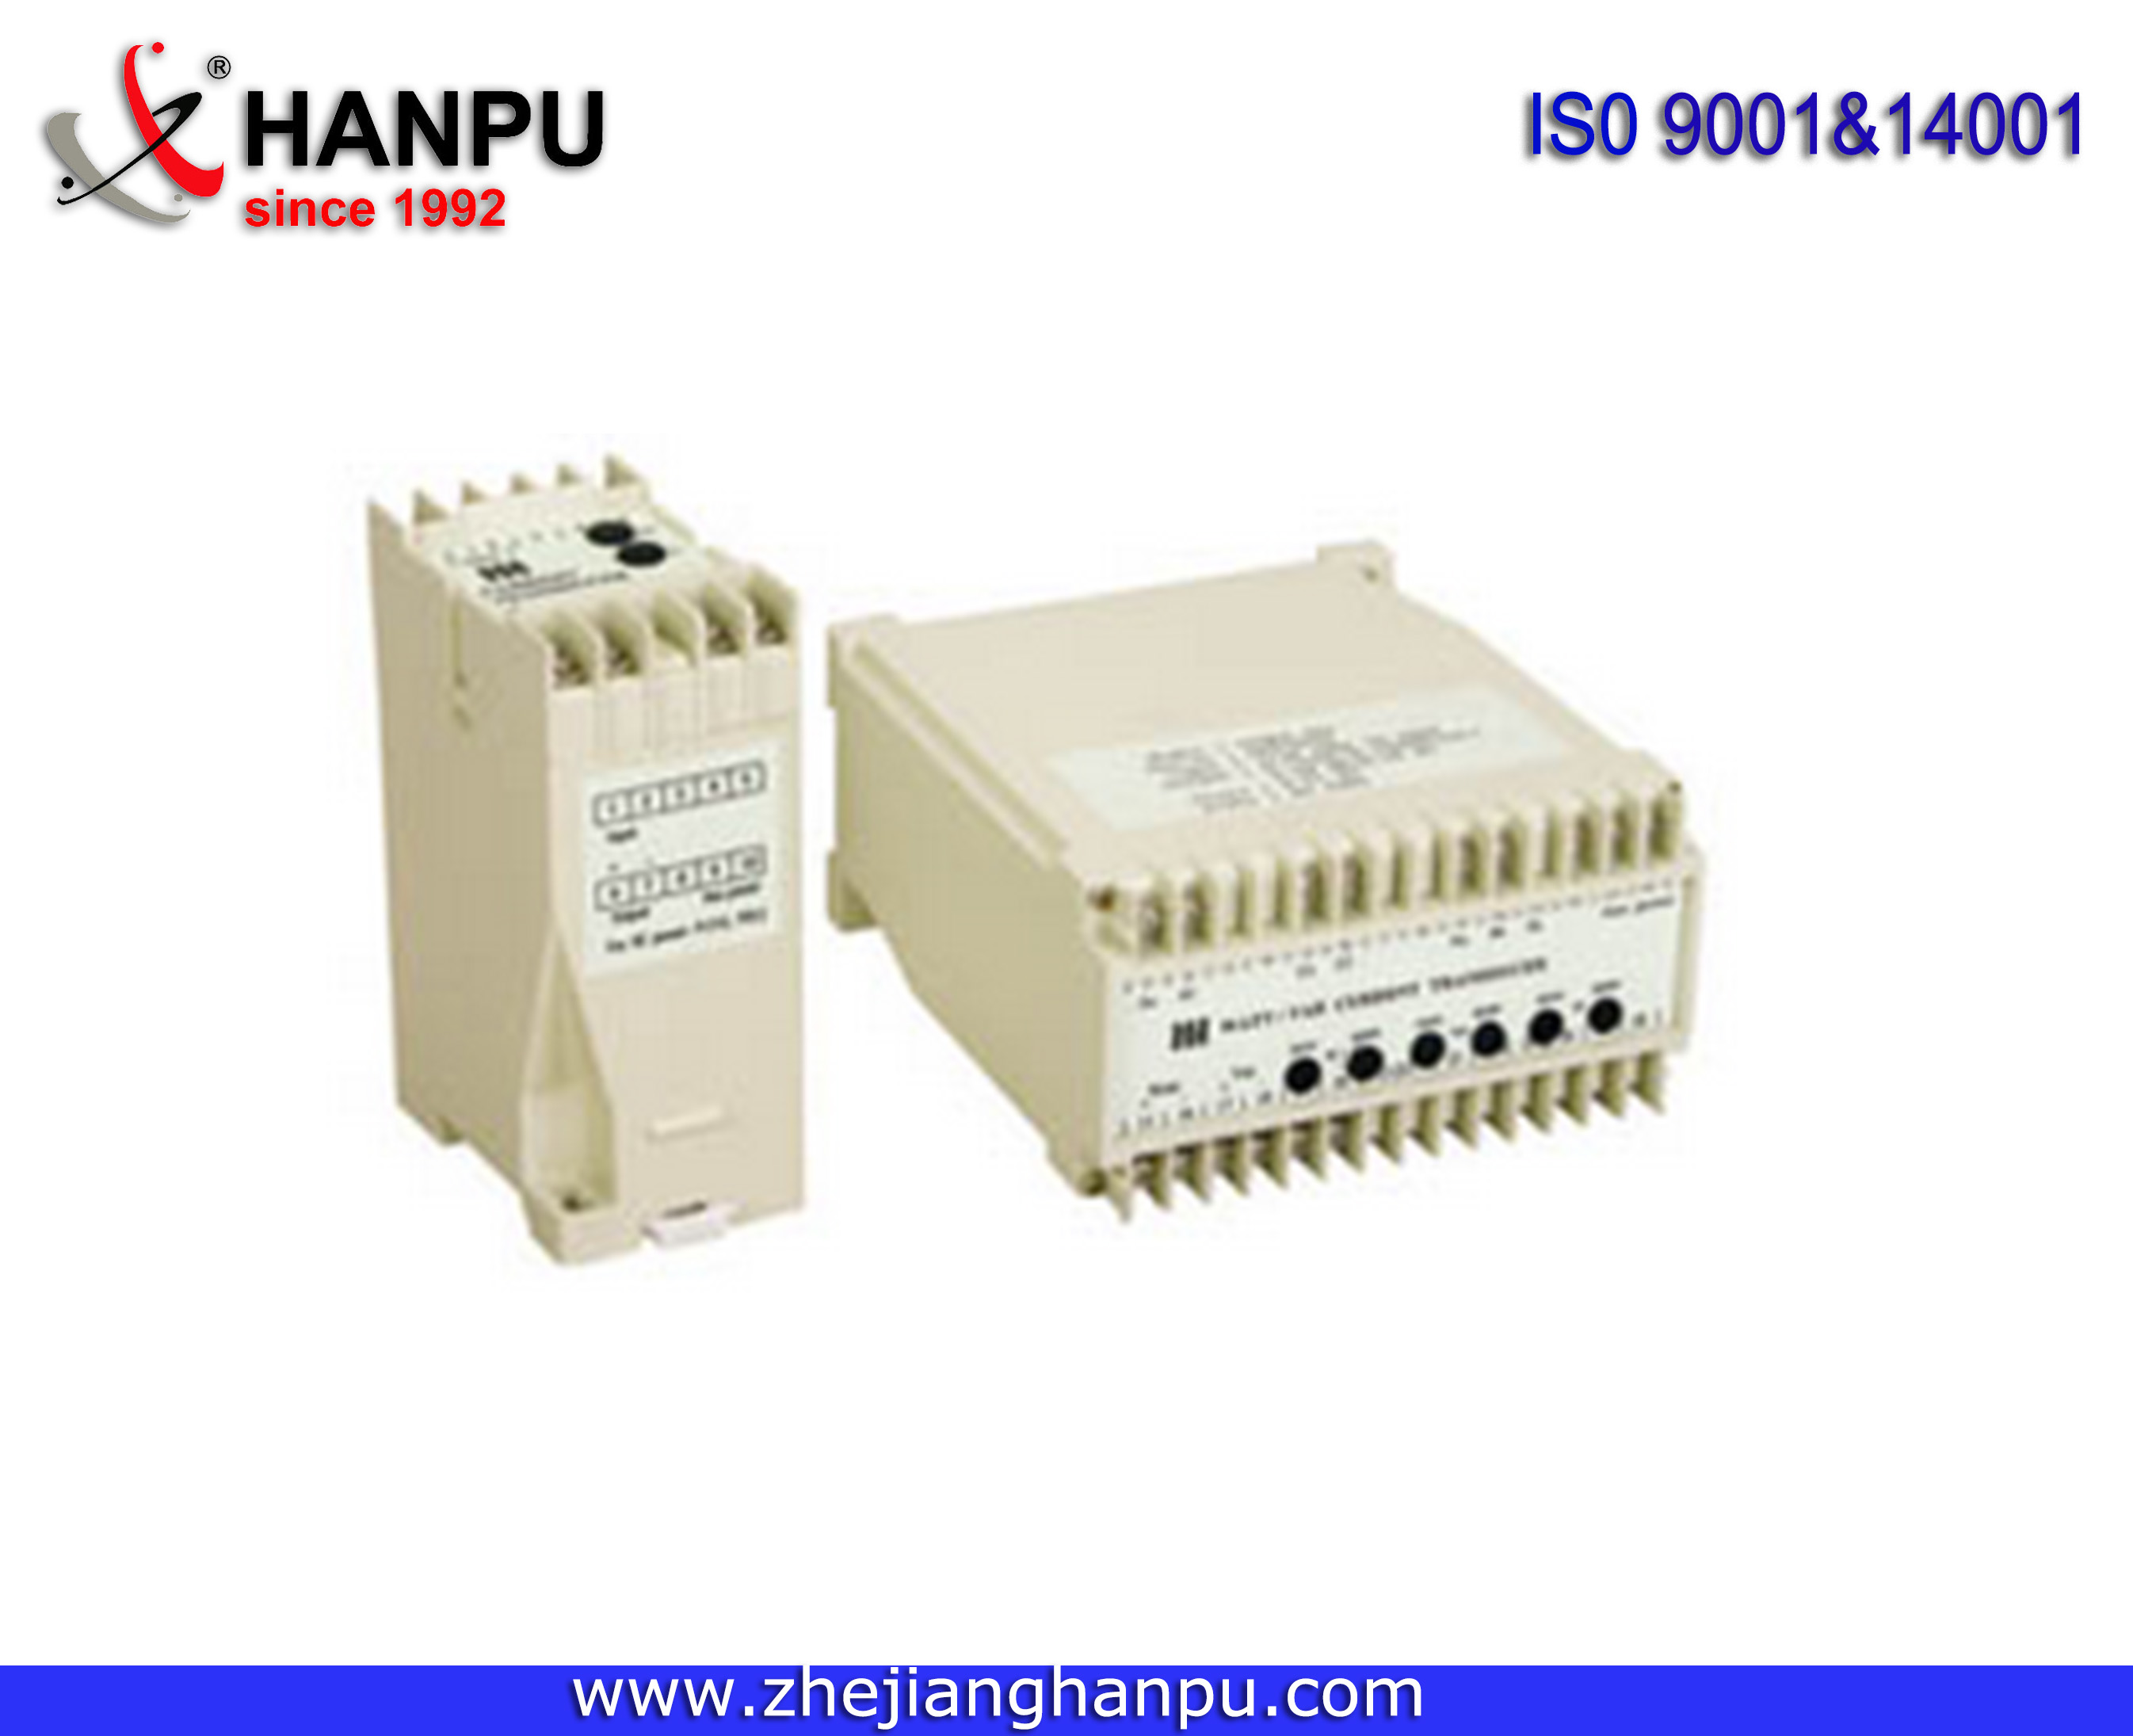 Gp/Ep Series Electrical Measuring Transducer